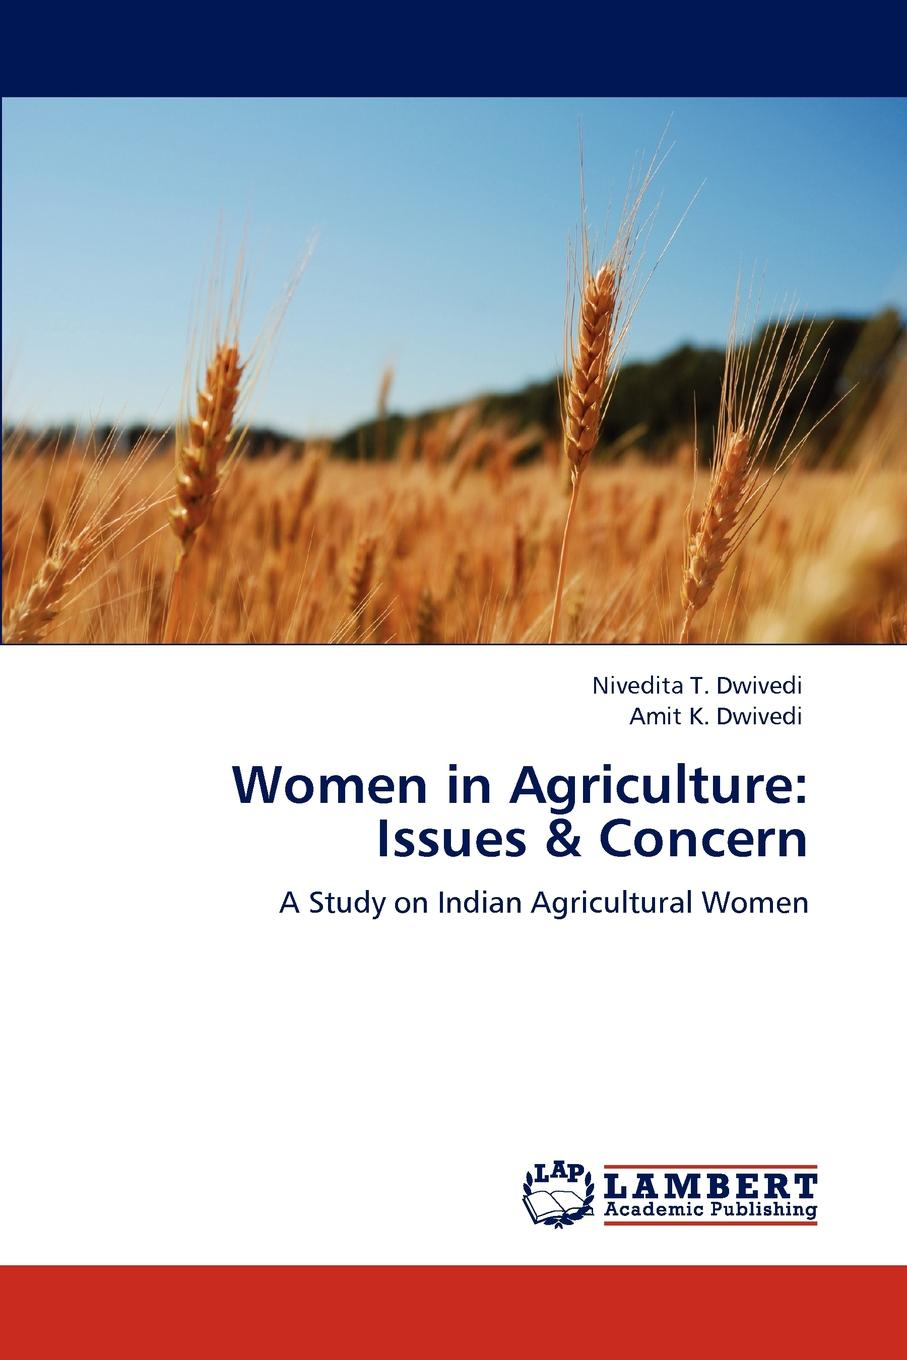 Dwivedi Nivedita T., Dwivedi Amit K. Women in Agriculture. Issues . Concern entrepreneurial orientations of rural women